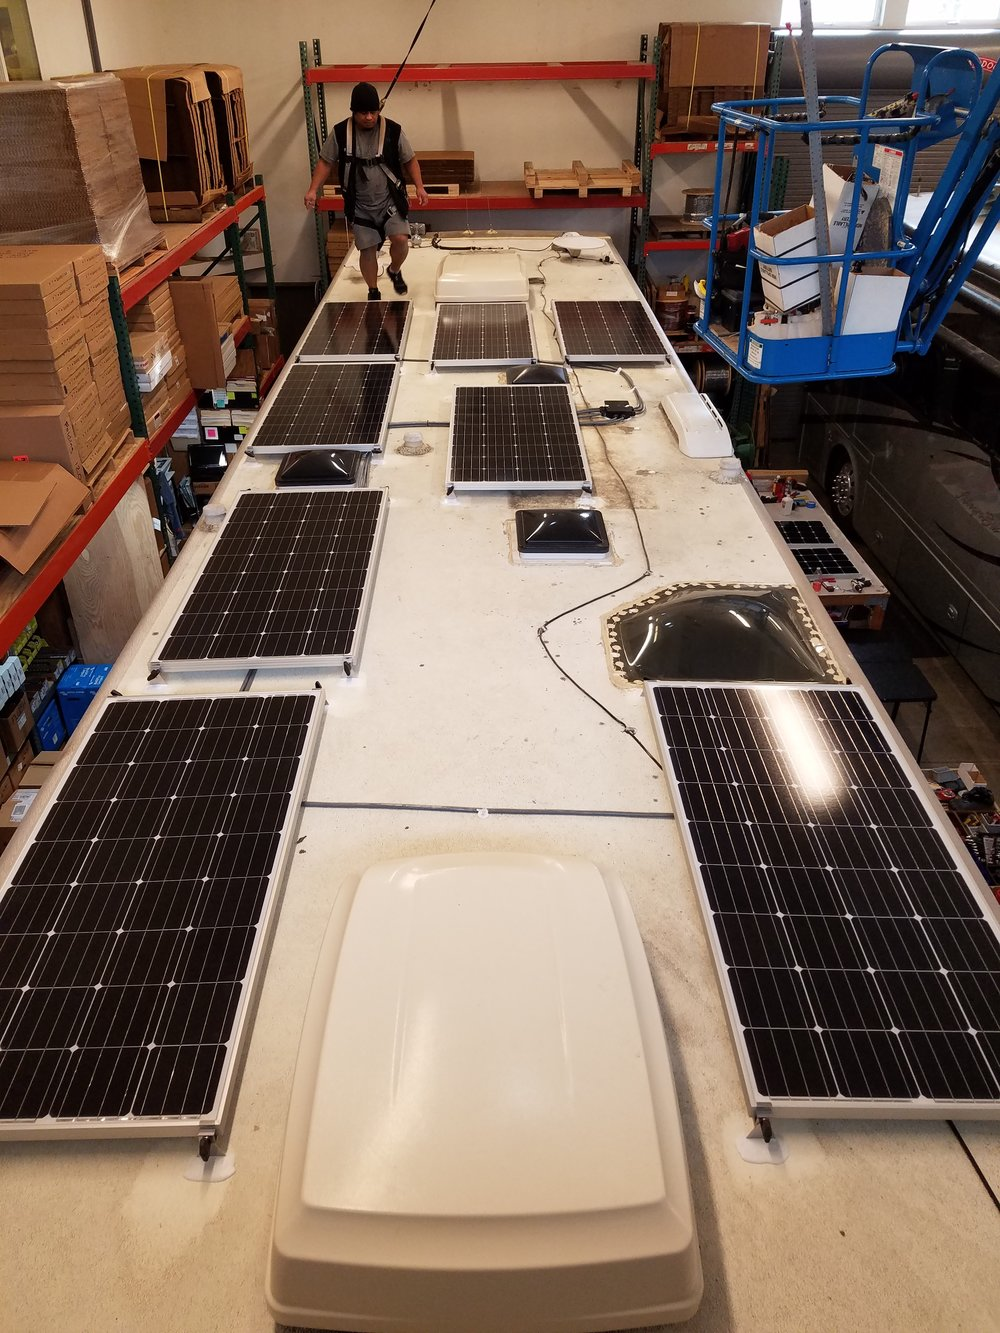 "Equipment Added:  8x 160W Solar Panels 1x Roof C-Box 4x 19.5"" Tilt Bar Sets 4x Tubes Dicor Sealant 1x Bluetooth Smart Dongle 1x Victron BlueSolar MPPT 150/100 Controller"